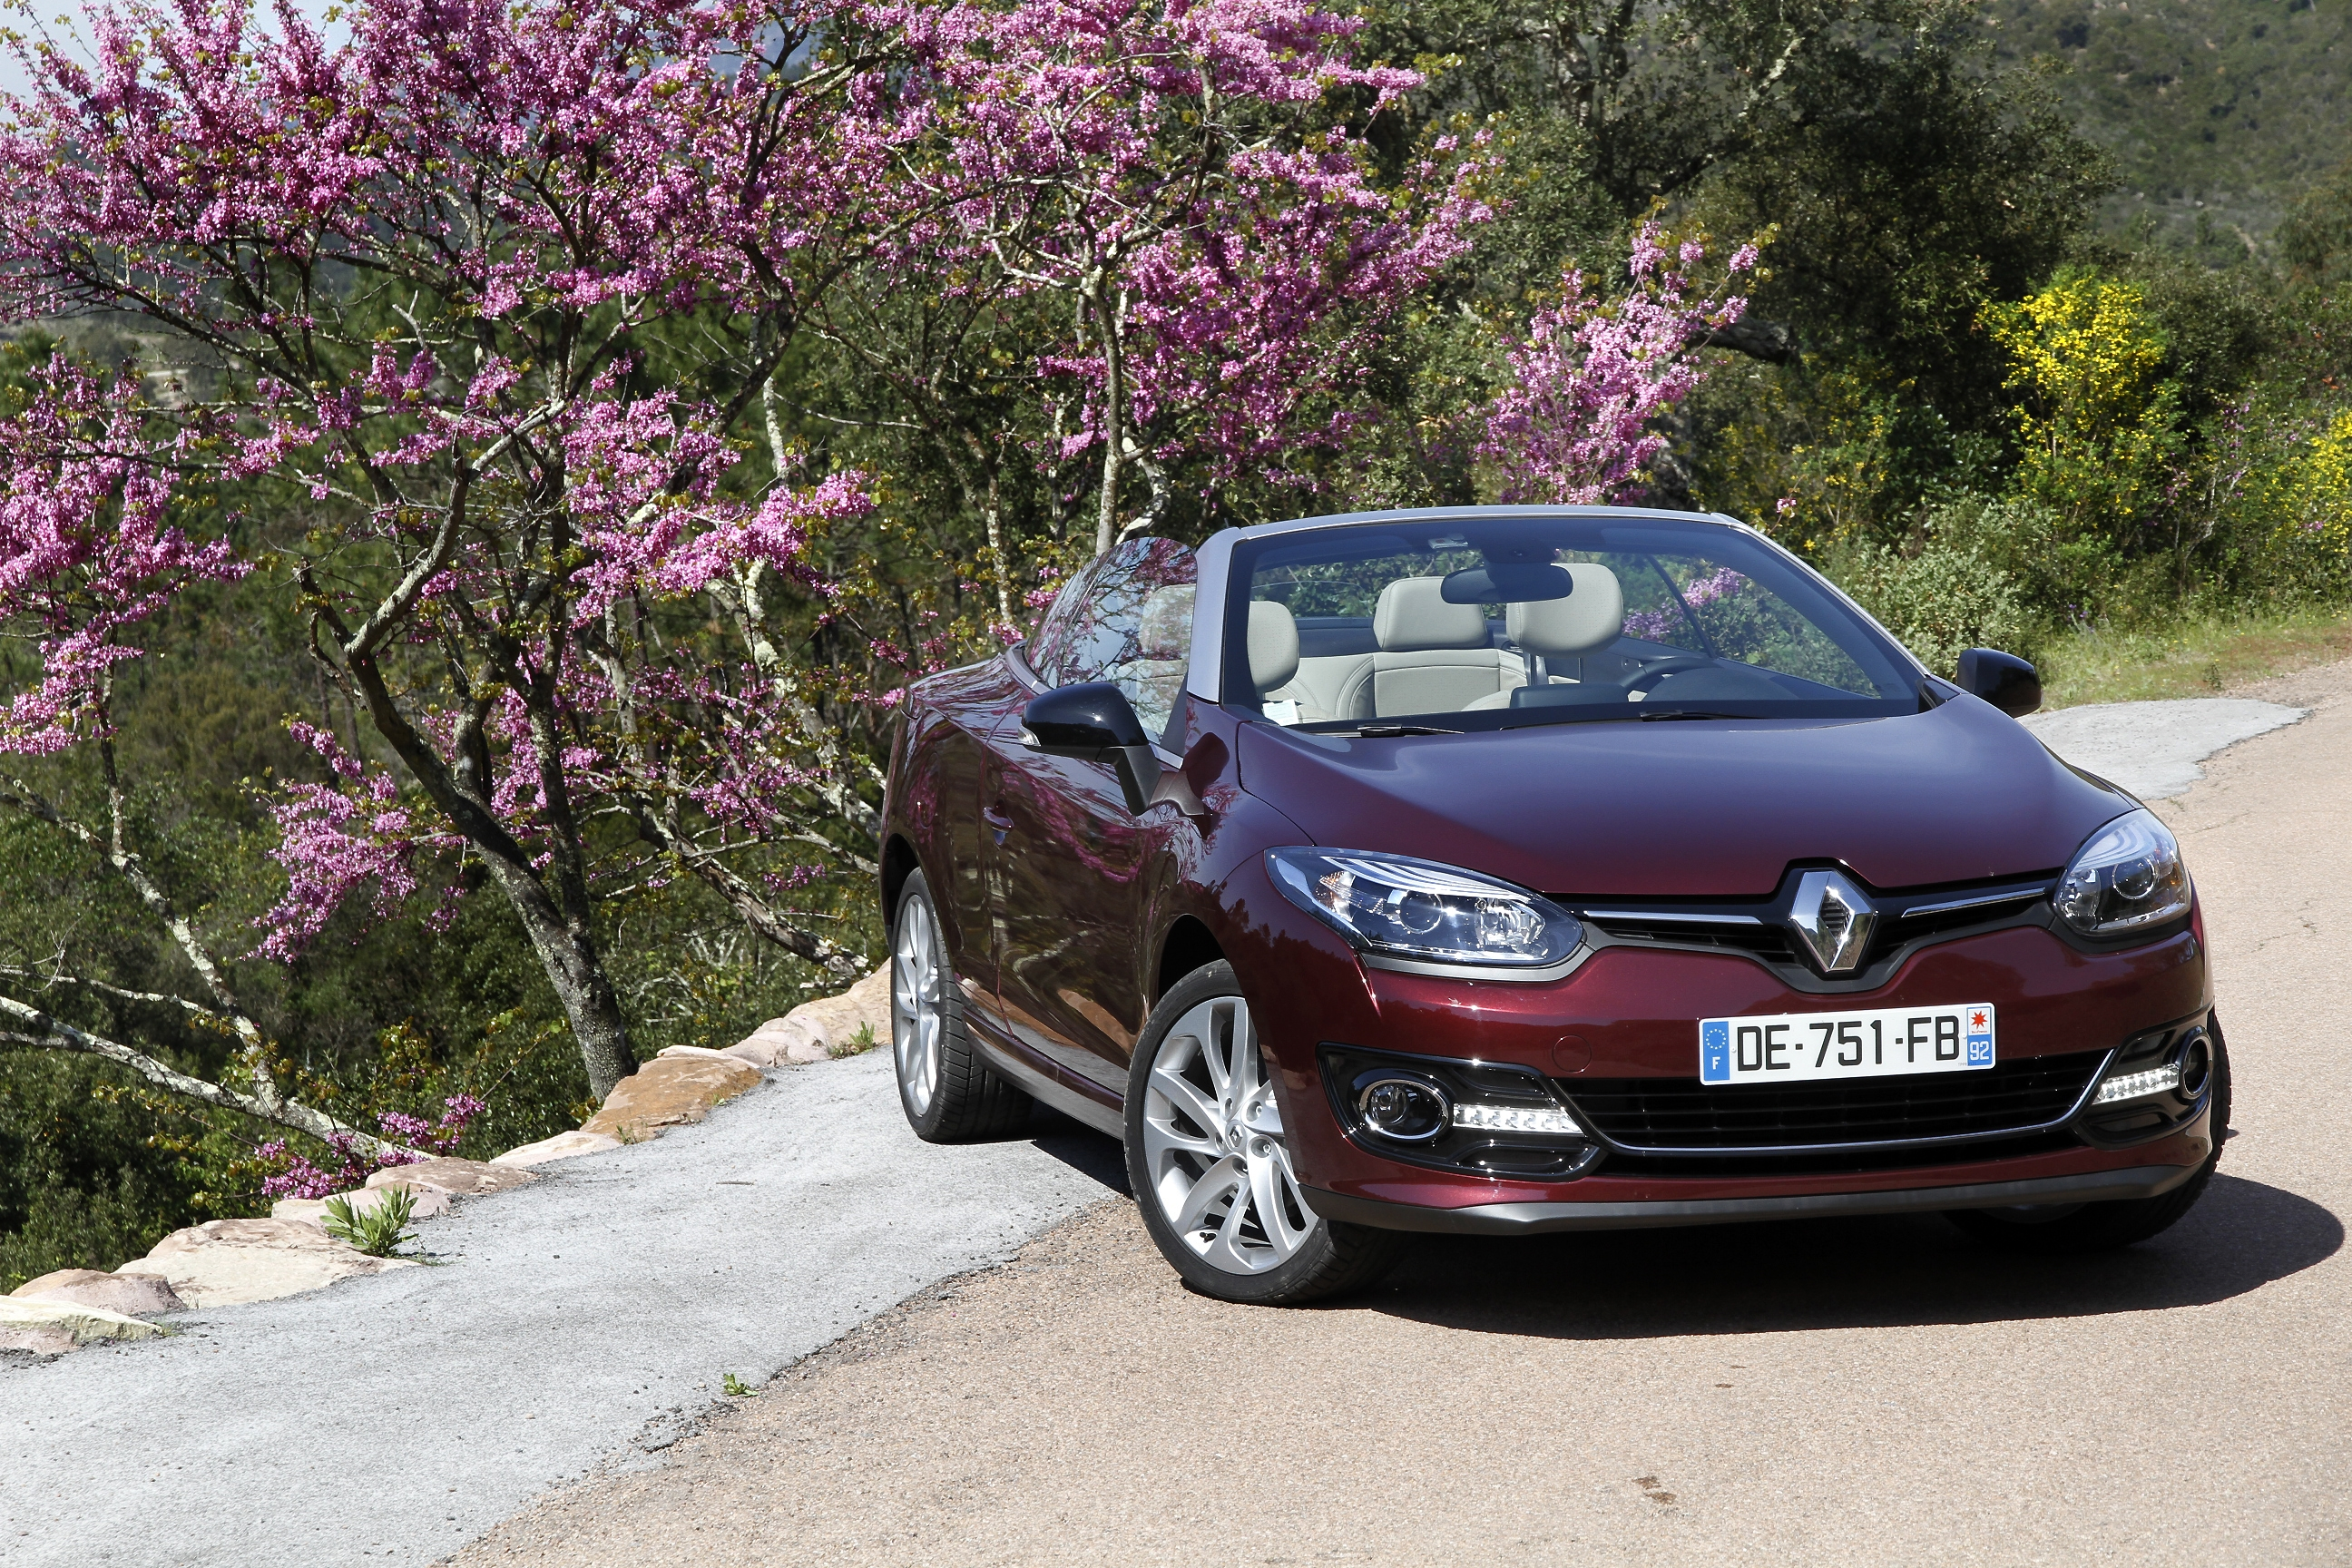 renault megane 3 coupe cabriolet essais fiabilit avis photos vid os. Black Bedroom Furniture Sets. Home Design Ideas